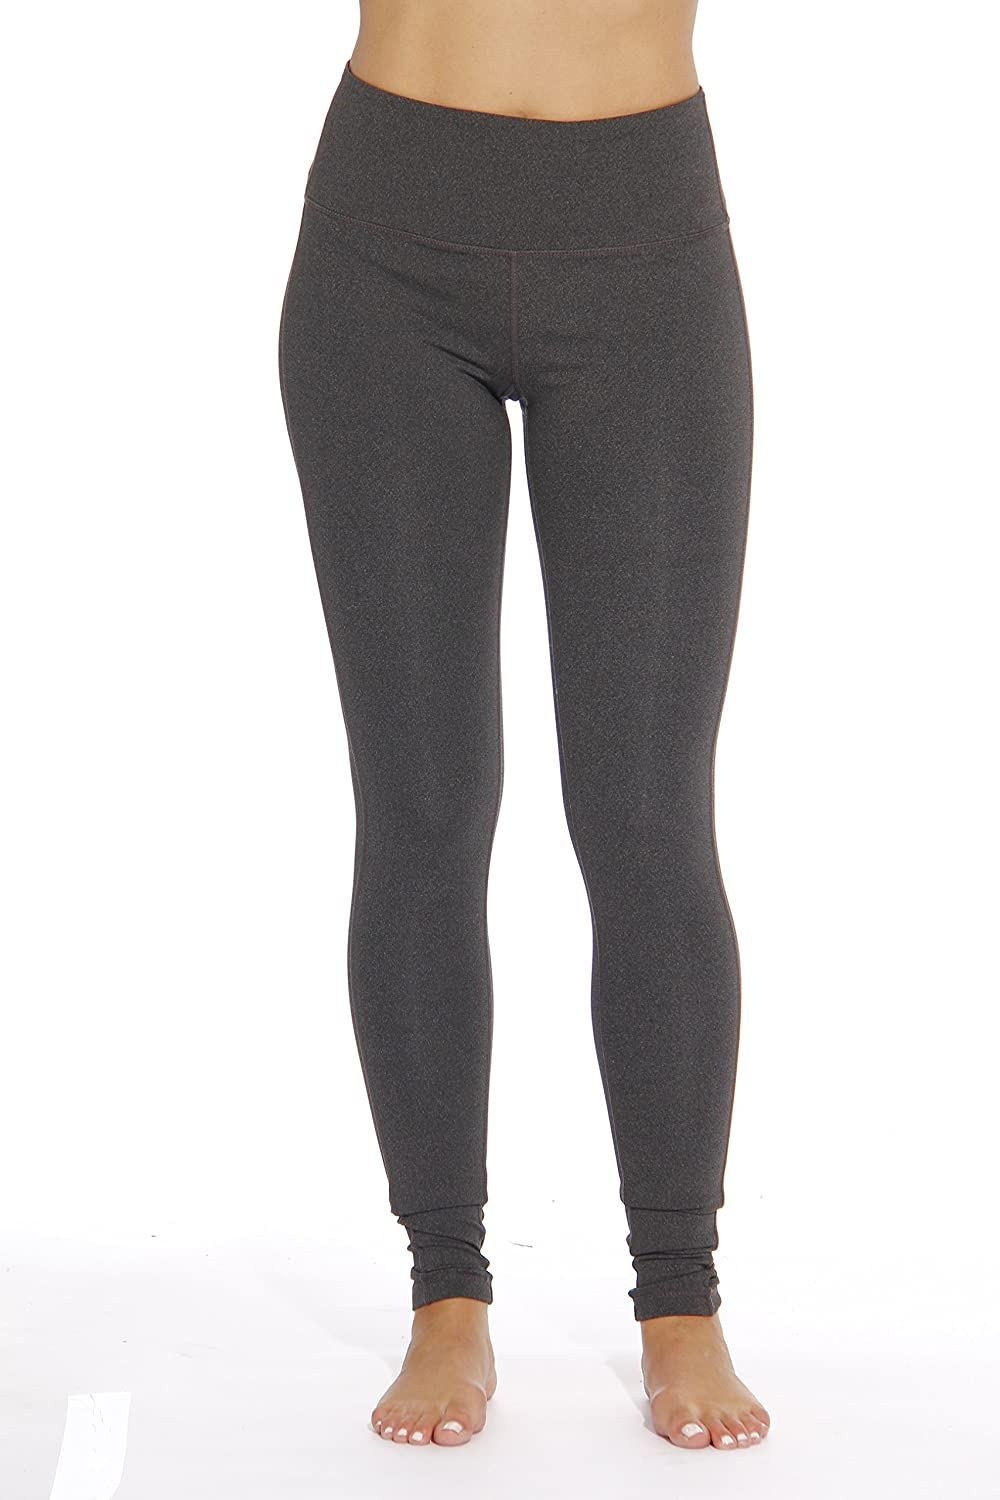 Just Love Stretch Yoga Pants for Women with Hidden Pocket 81EDlxHvf5L